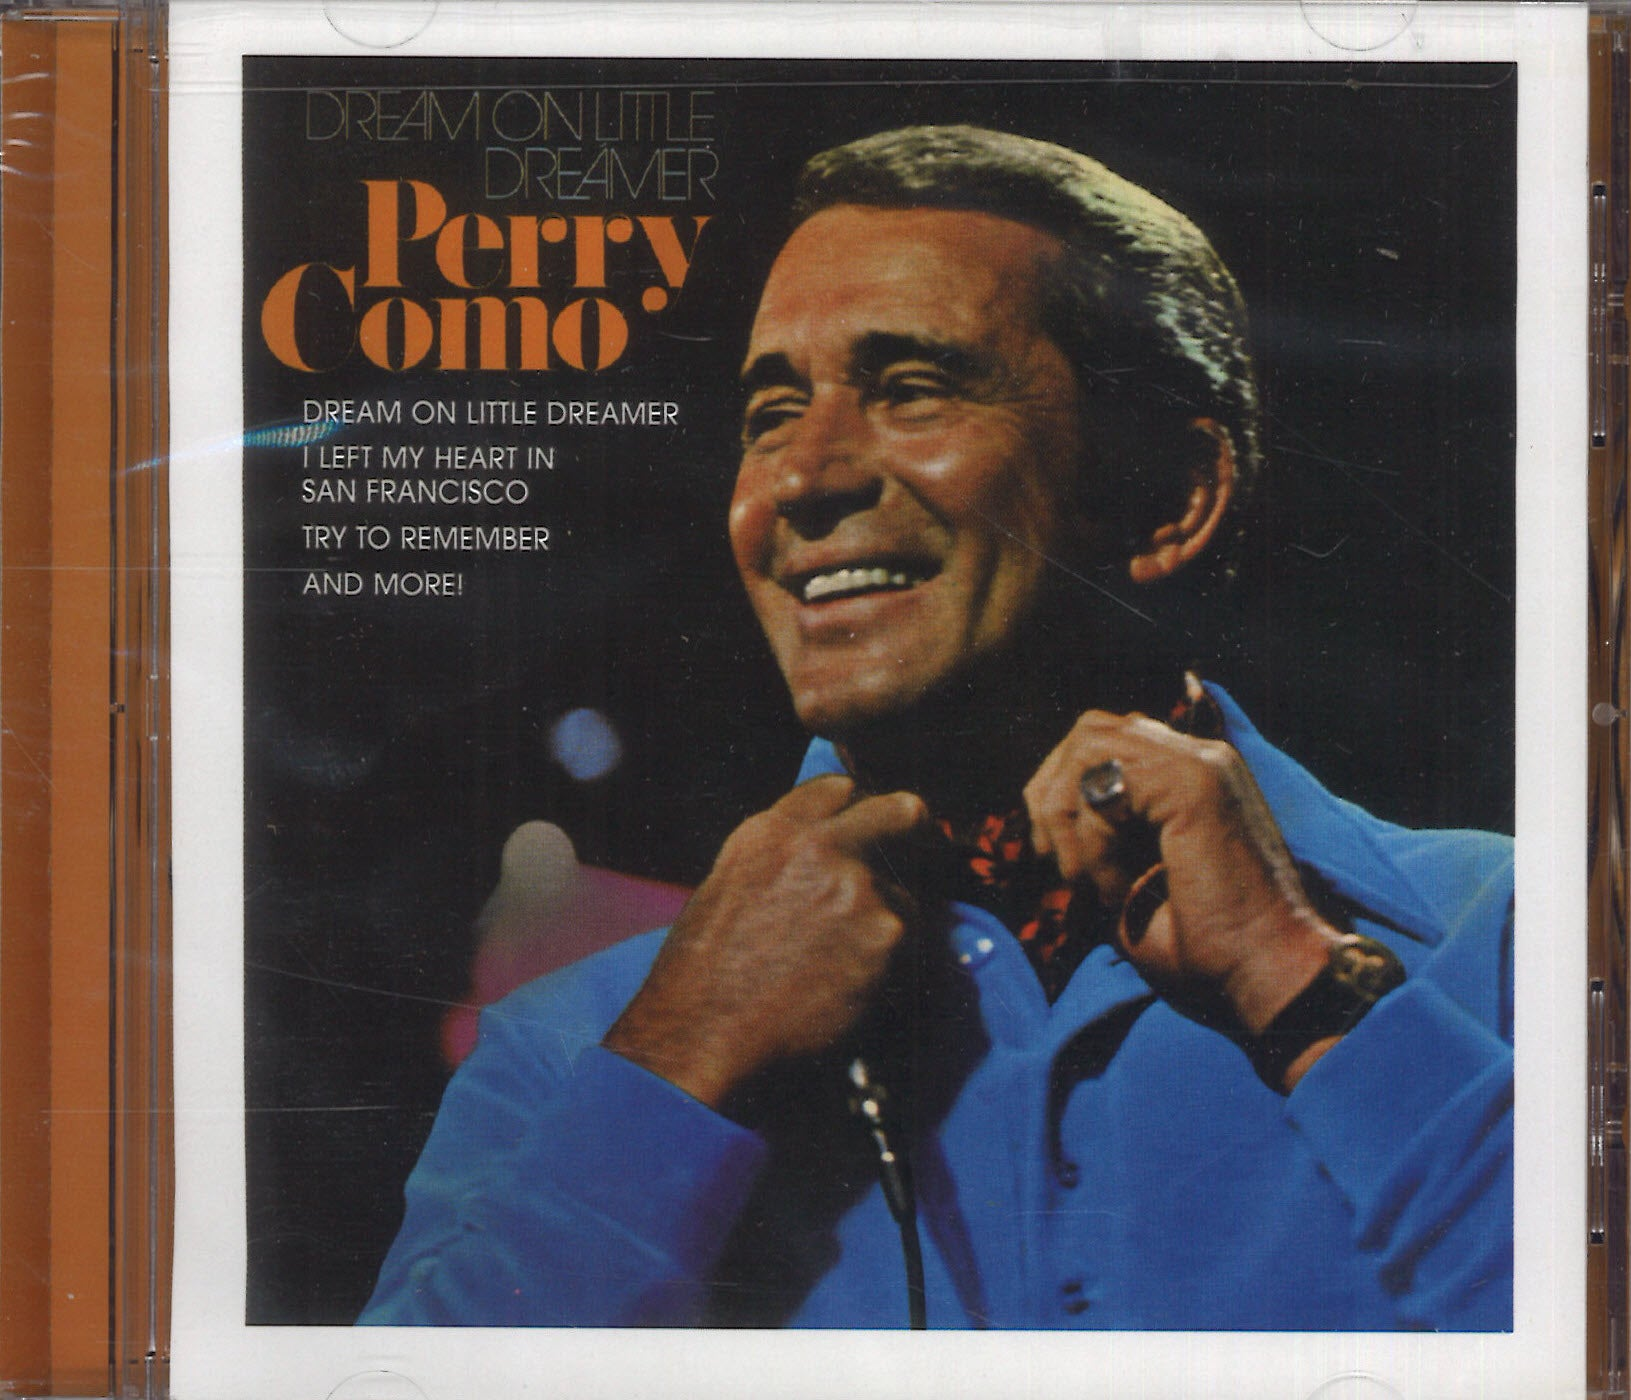 Perry Como Dream On Little Dreamer